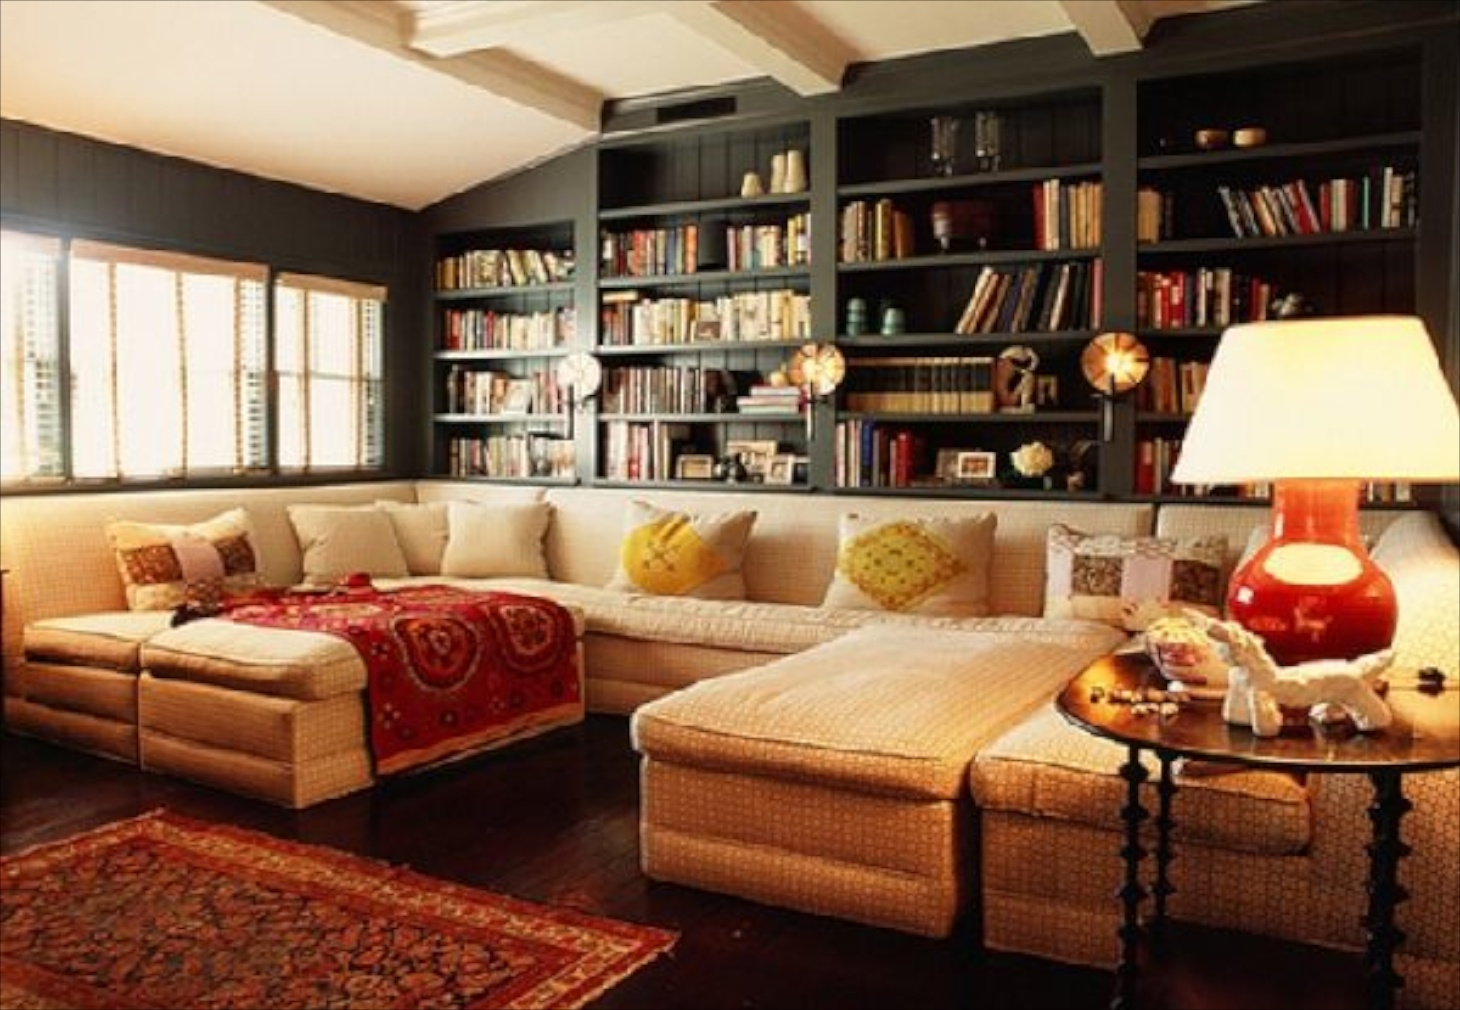 23_Sofas-and-Bookcase-Ideas-in-Cozy-Living-Room-Design-with-Mixture